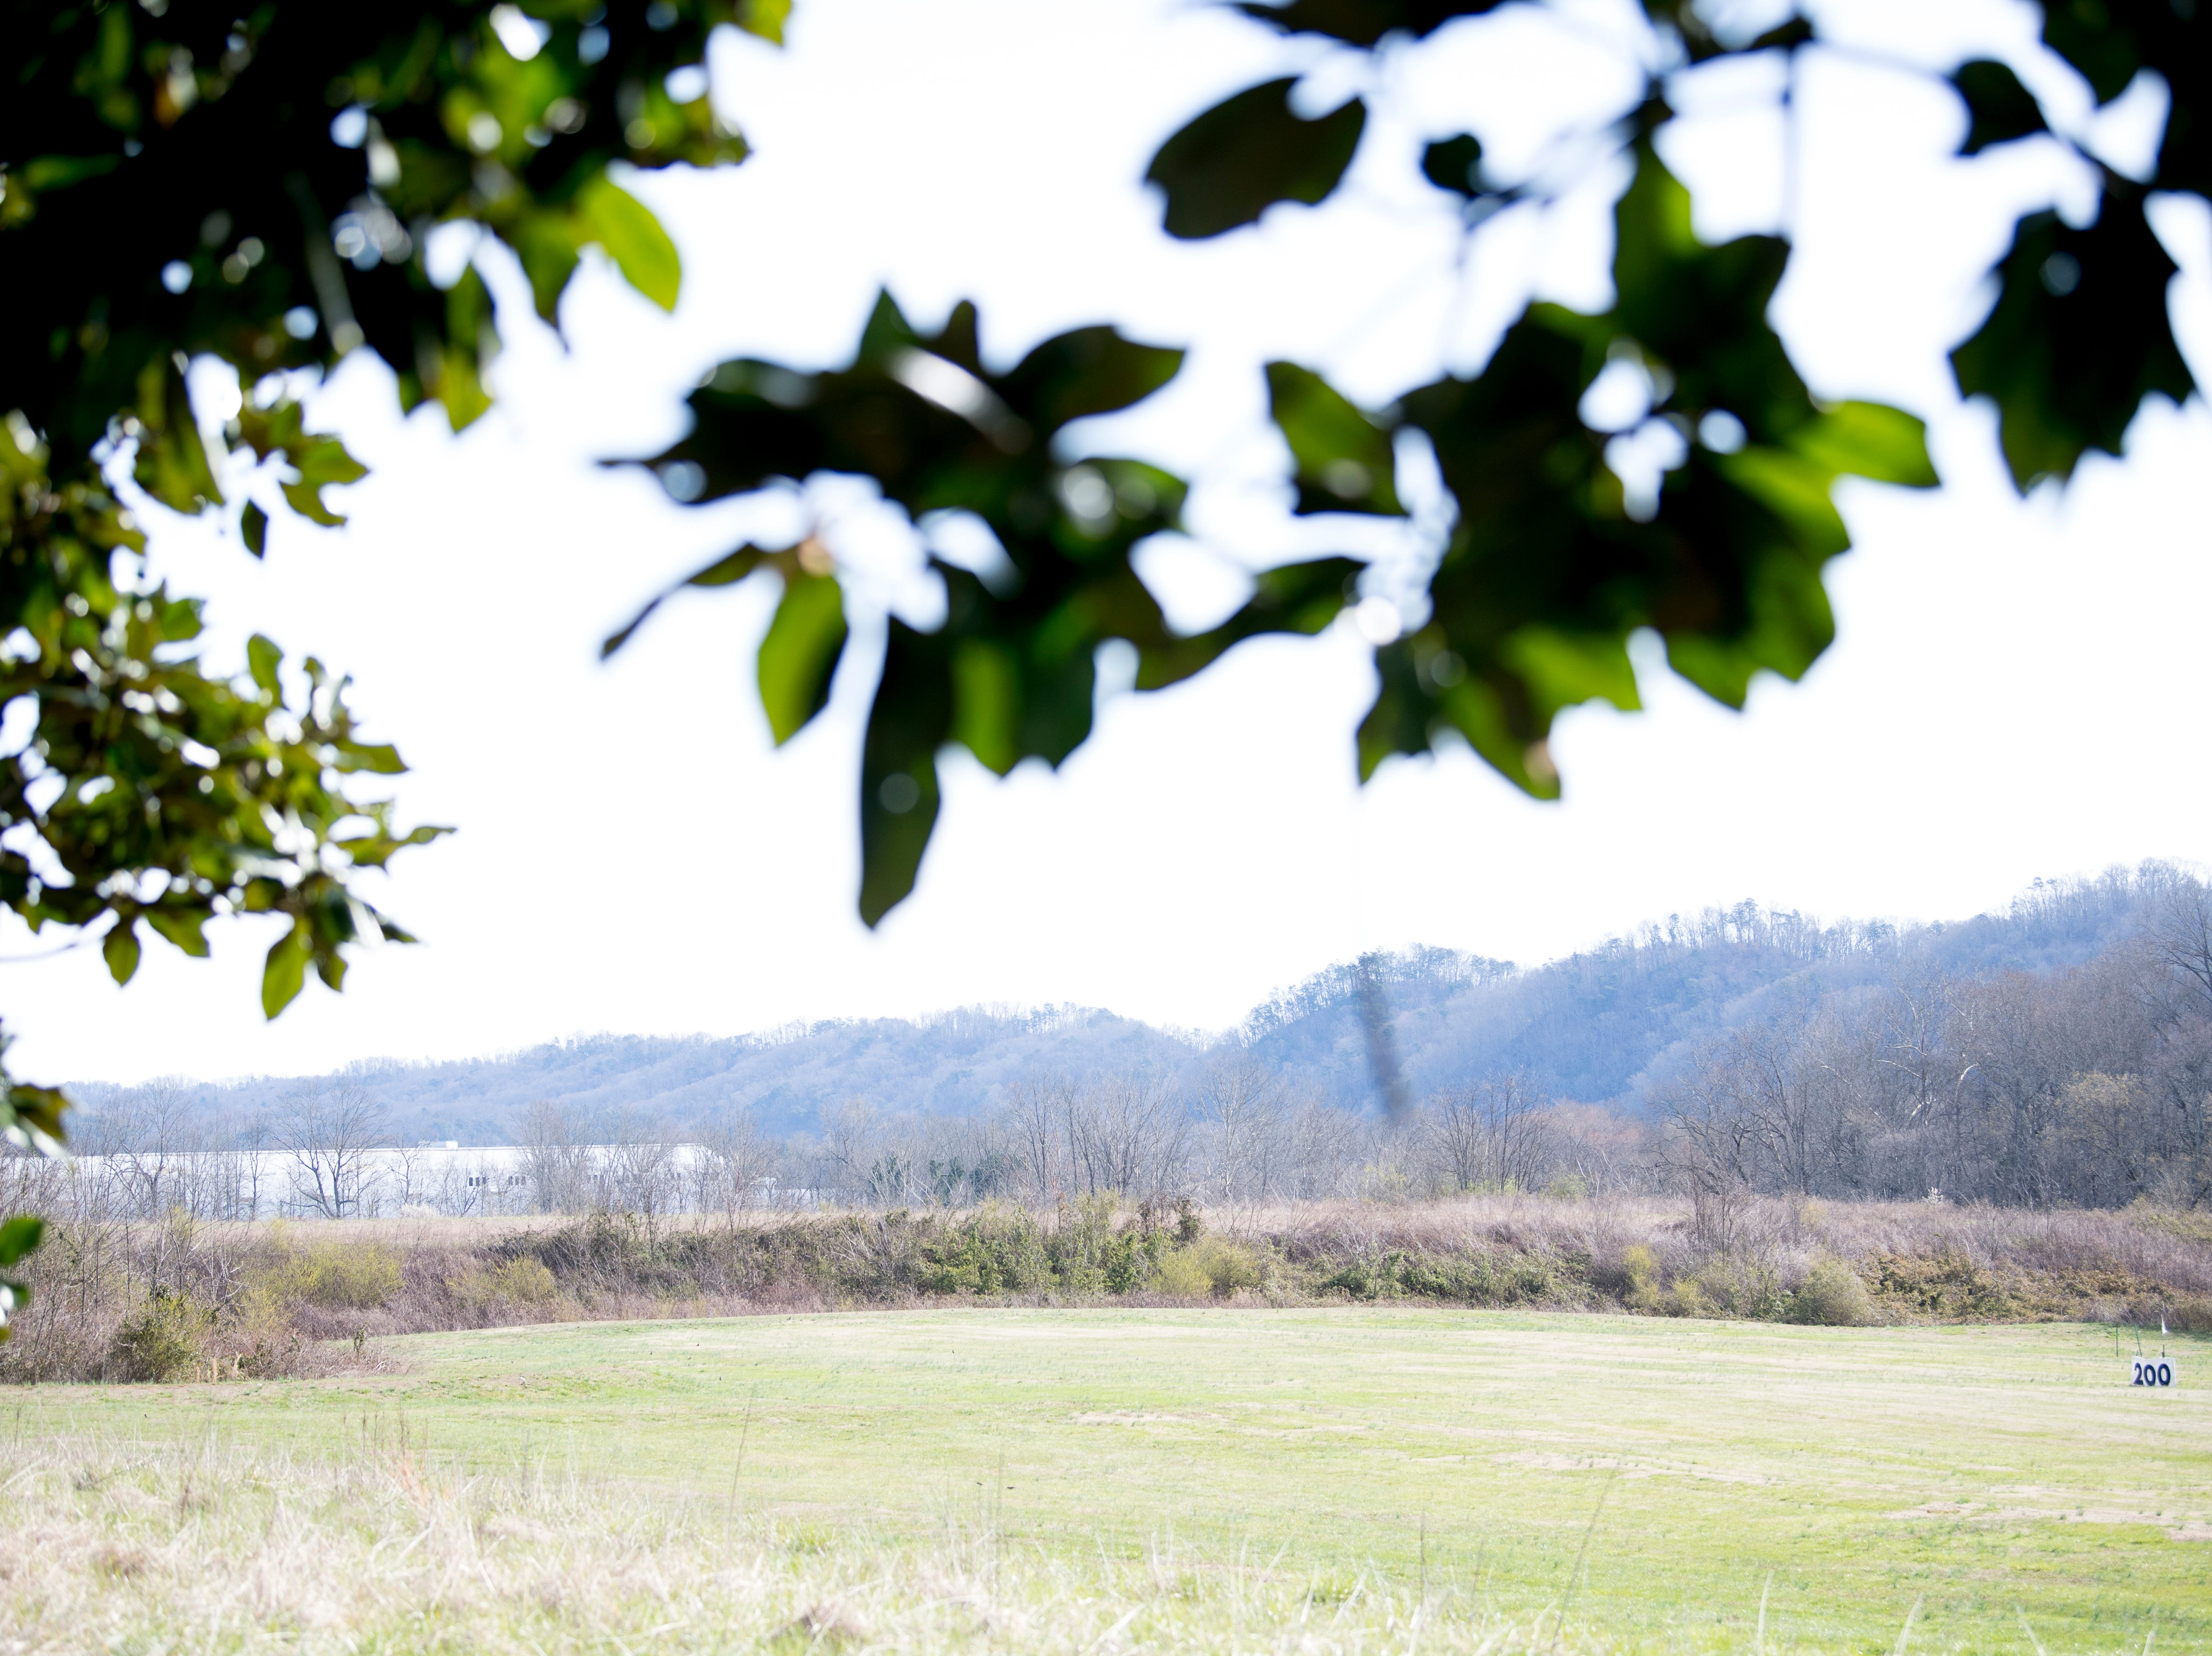 A view of the site of the future Aspire Park in Clinton, Tennessee on Tuesday, March 12, 2019. The Hollingsworth Foundation is looking to redevelop nearly 450 acres of land off Yarnell Road into a recreational park.